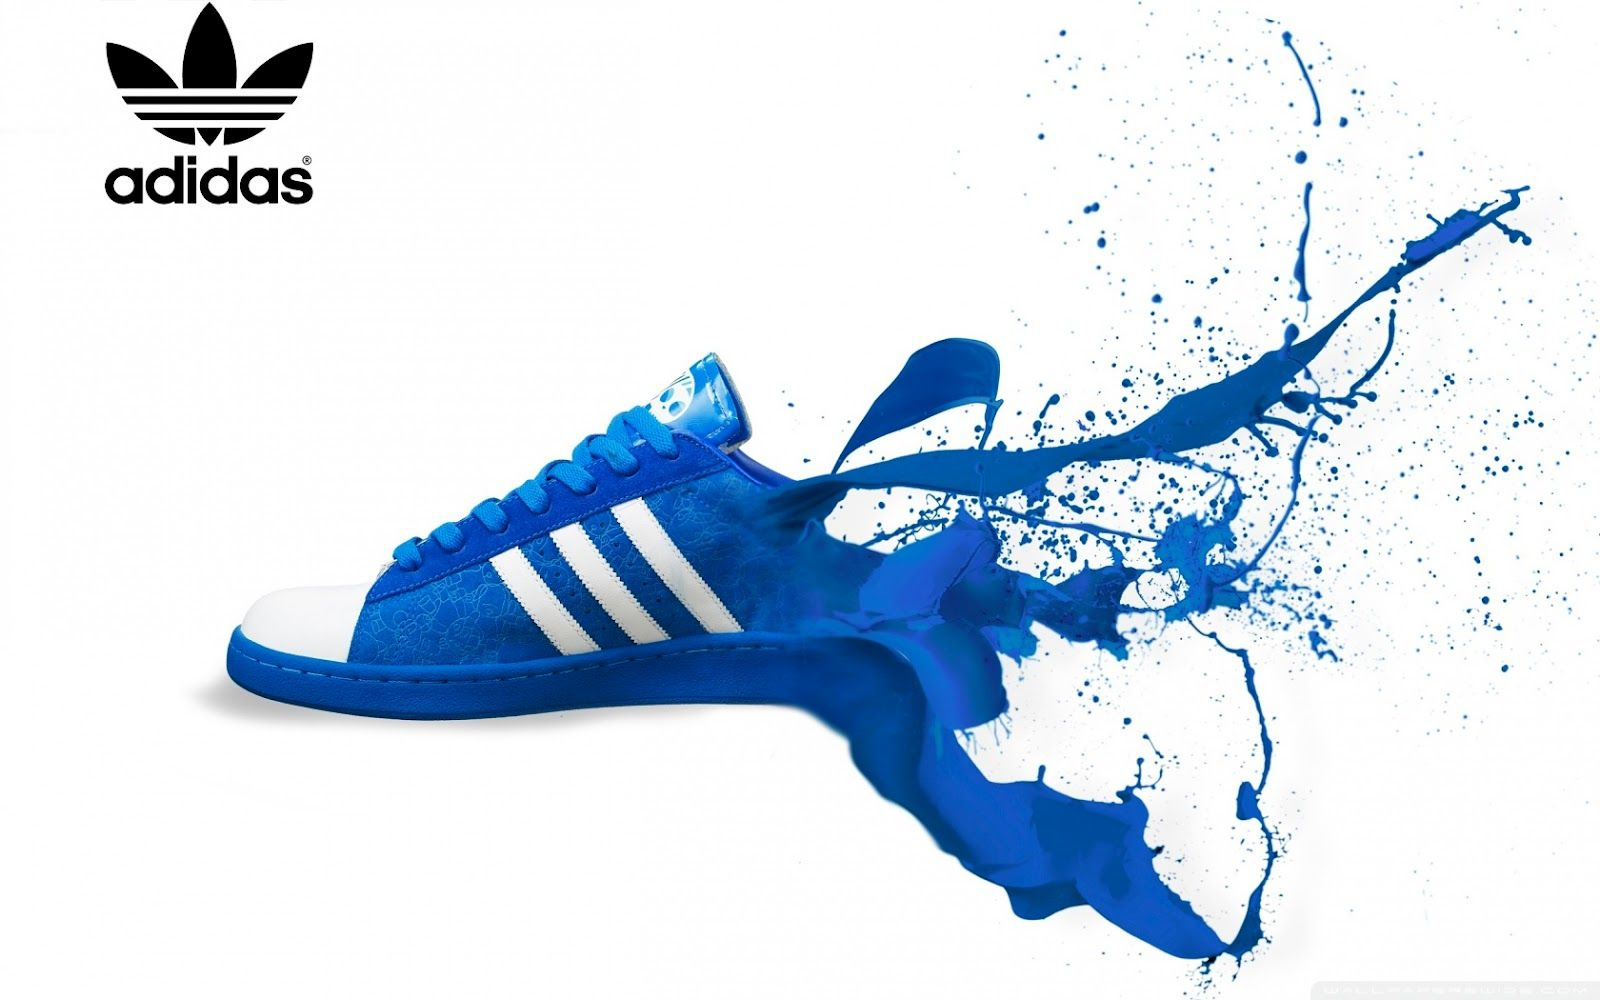 Adidas Logo Splash Shoes Wallpaper Your Top HD Wallpapers #ID61662 (shared  via SlingPic)